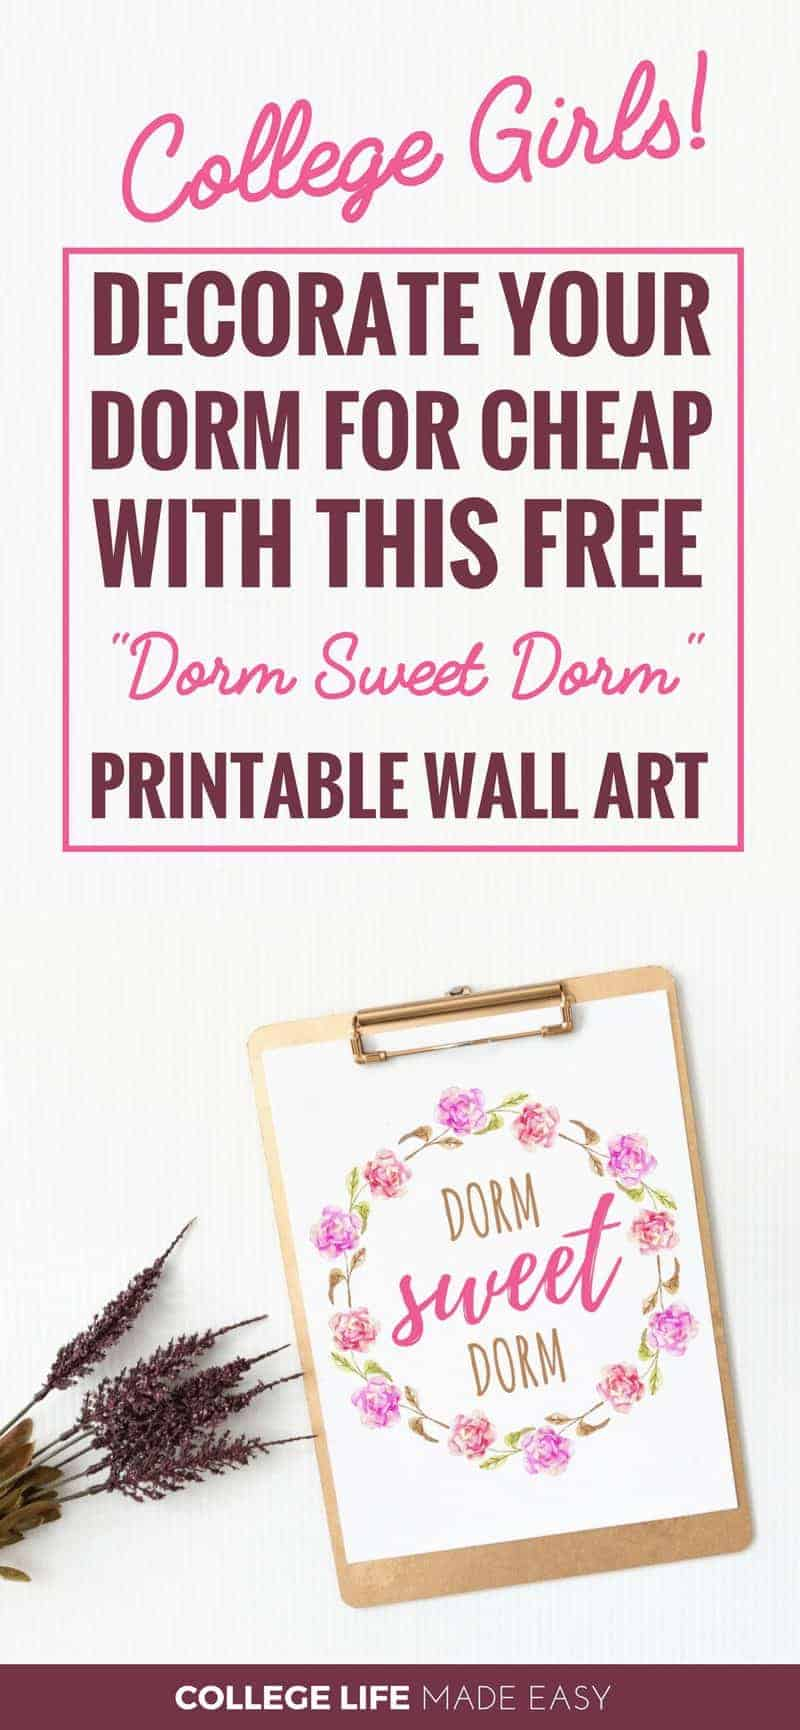 How to Decorate Your College Girl Dorm for Cheap Use This Free Dorm Sweet Dorm Printable Wall Art!